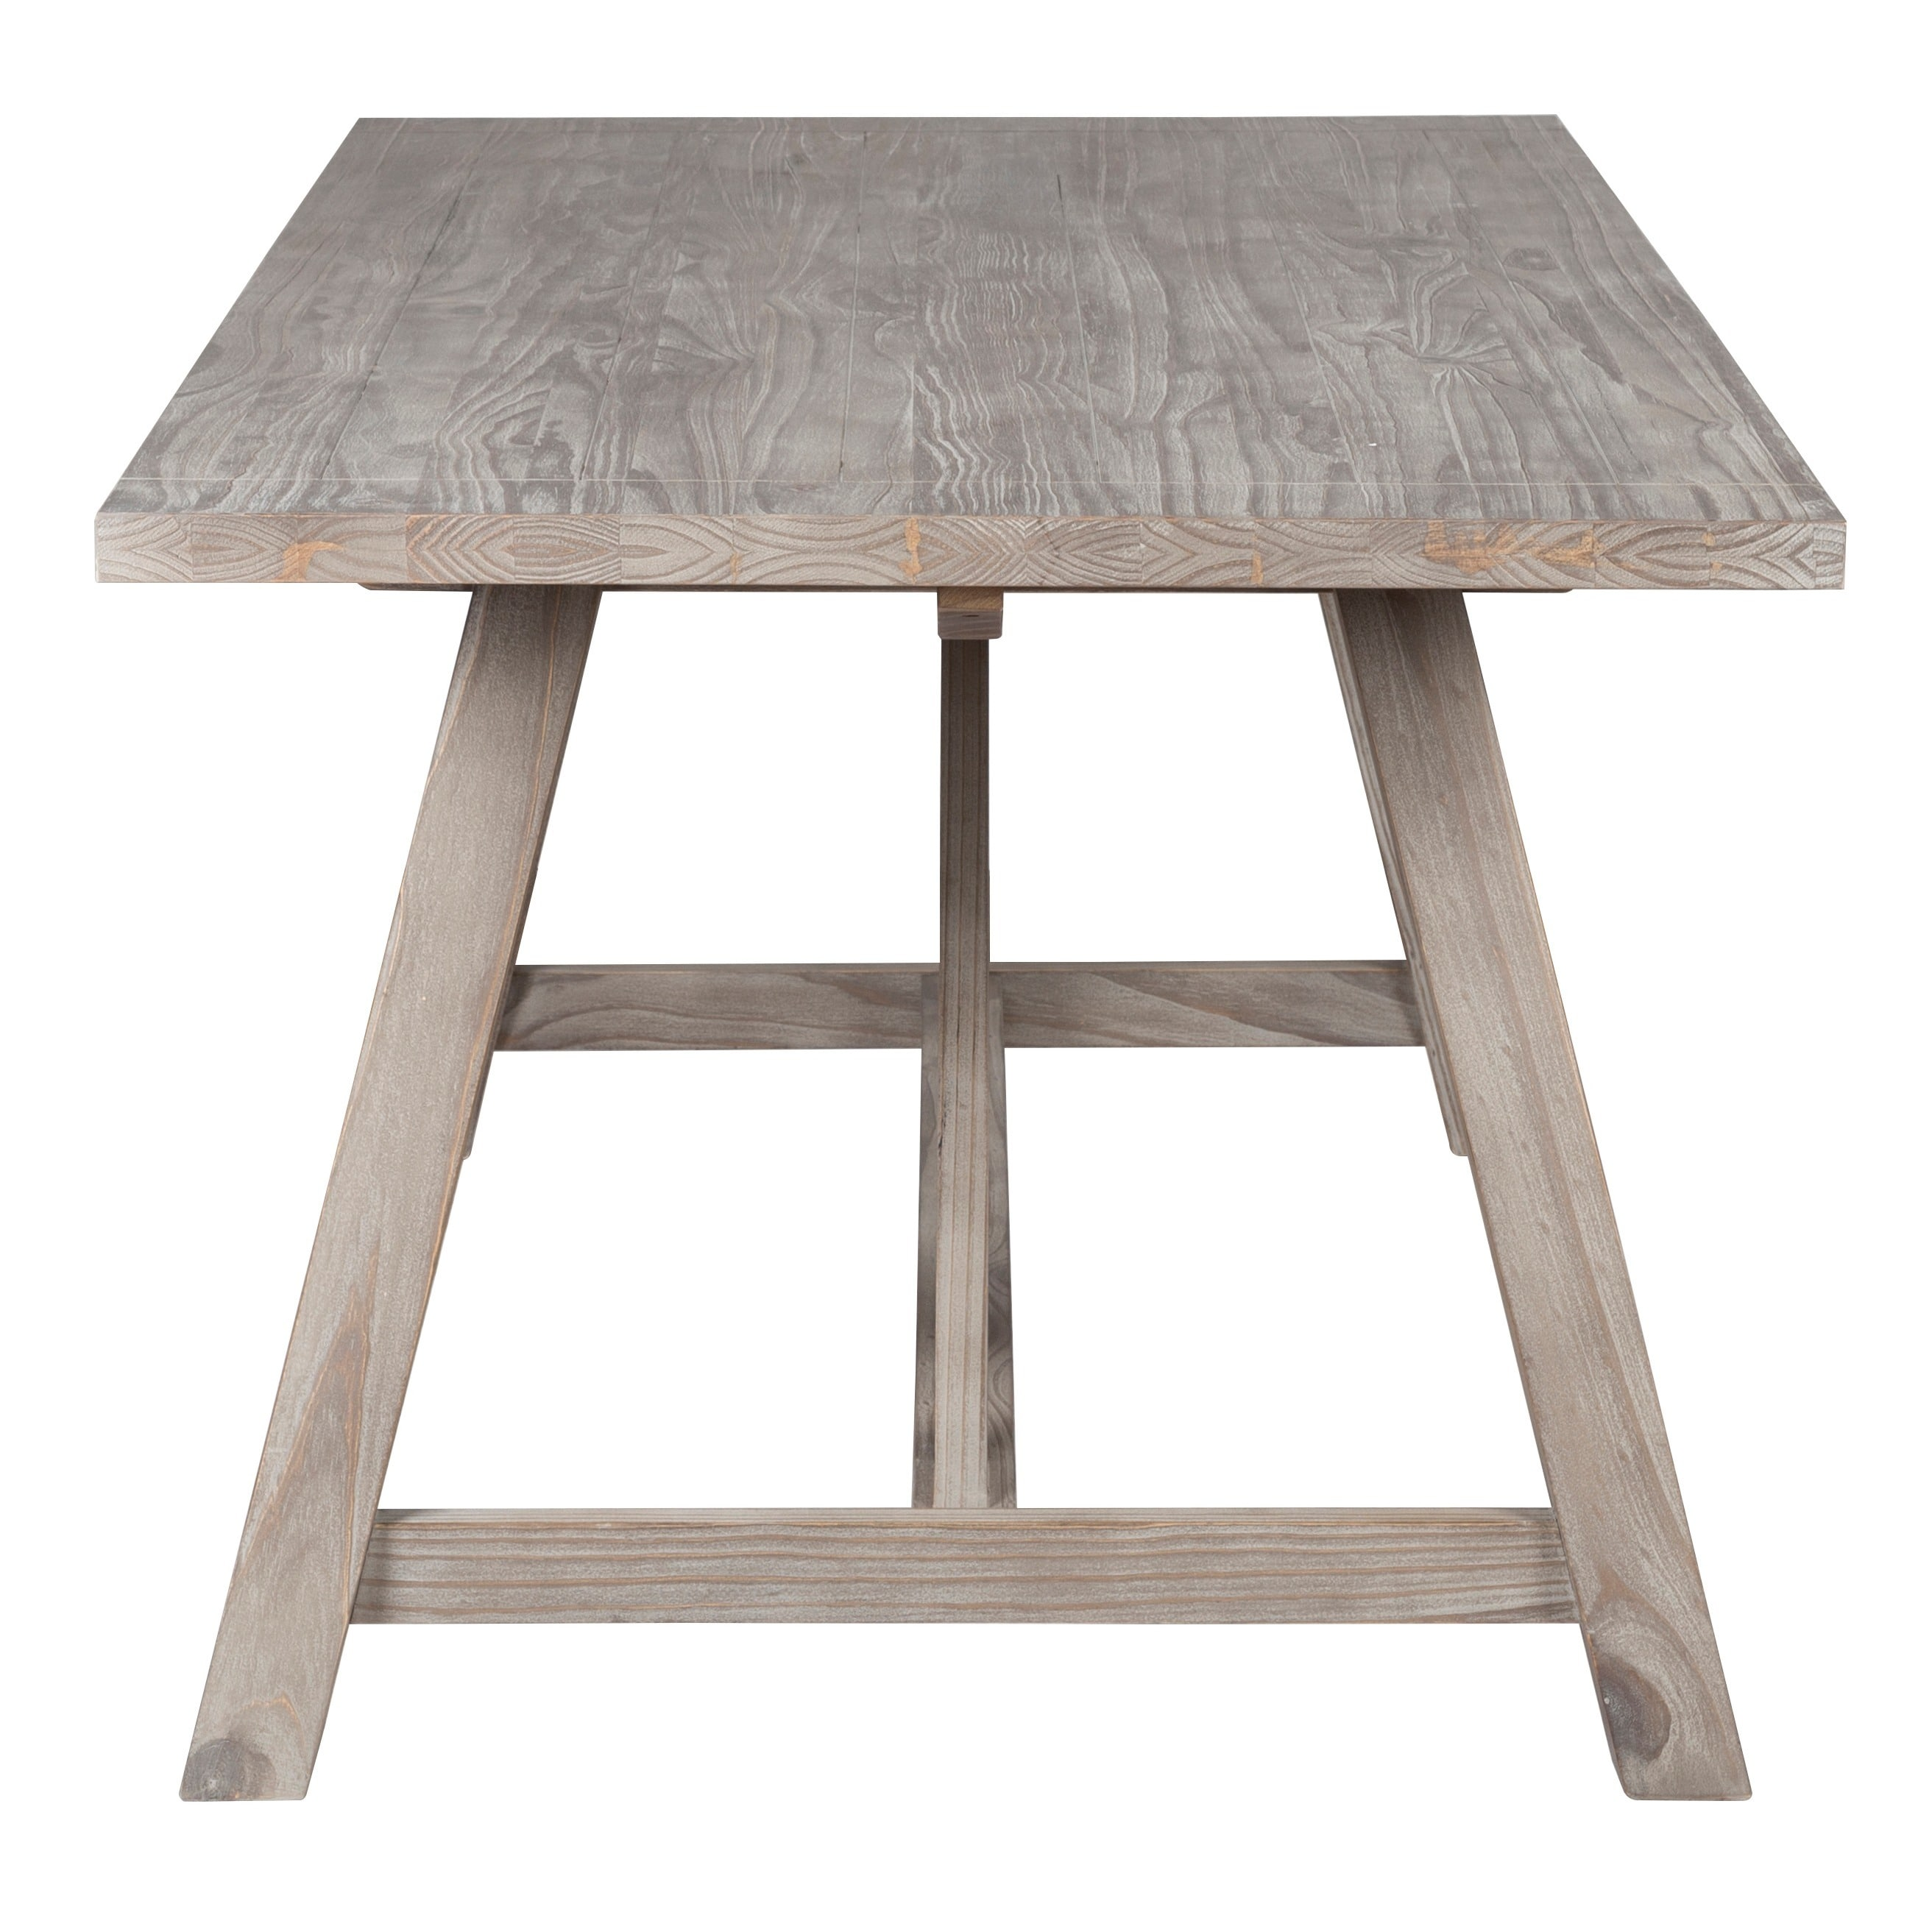 72 inch dining bench french country dining shop aubrey rustic grey 72inch dining table by kosas home distressed ash grey 30h 72w 36d on sale free shipping today overstockcom